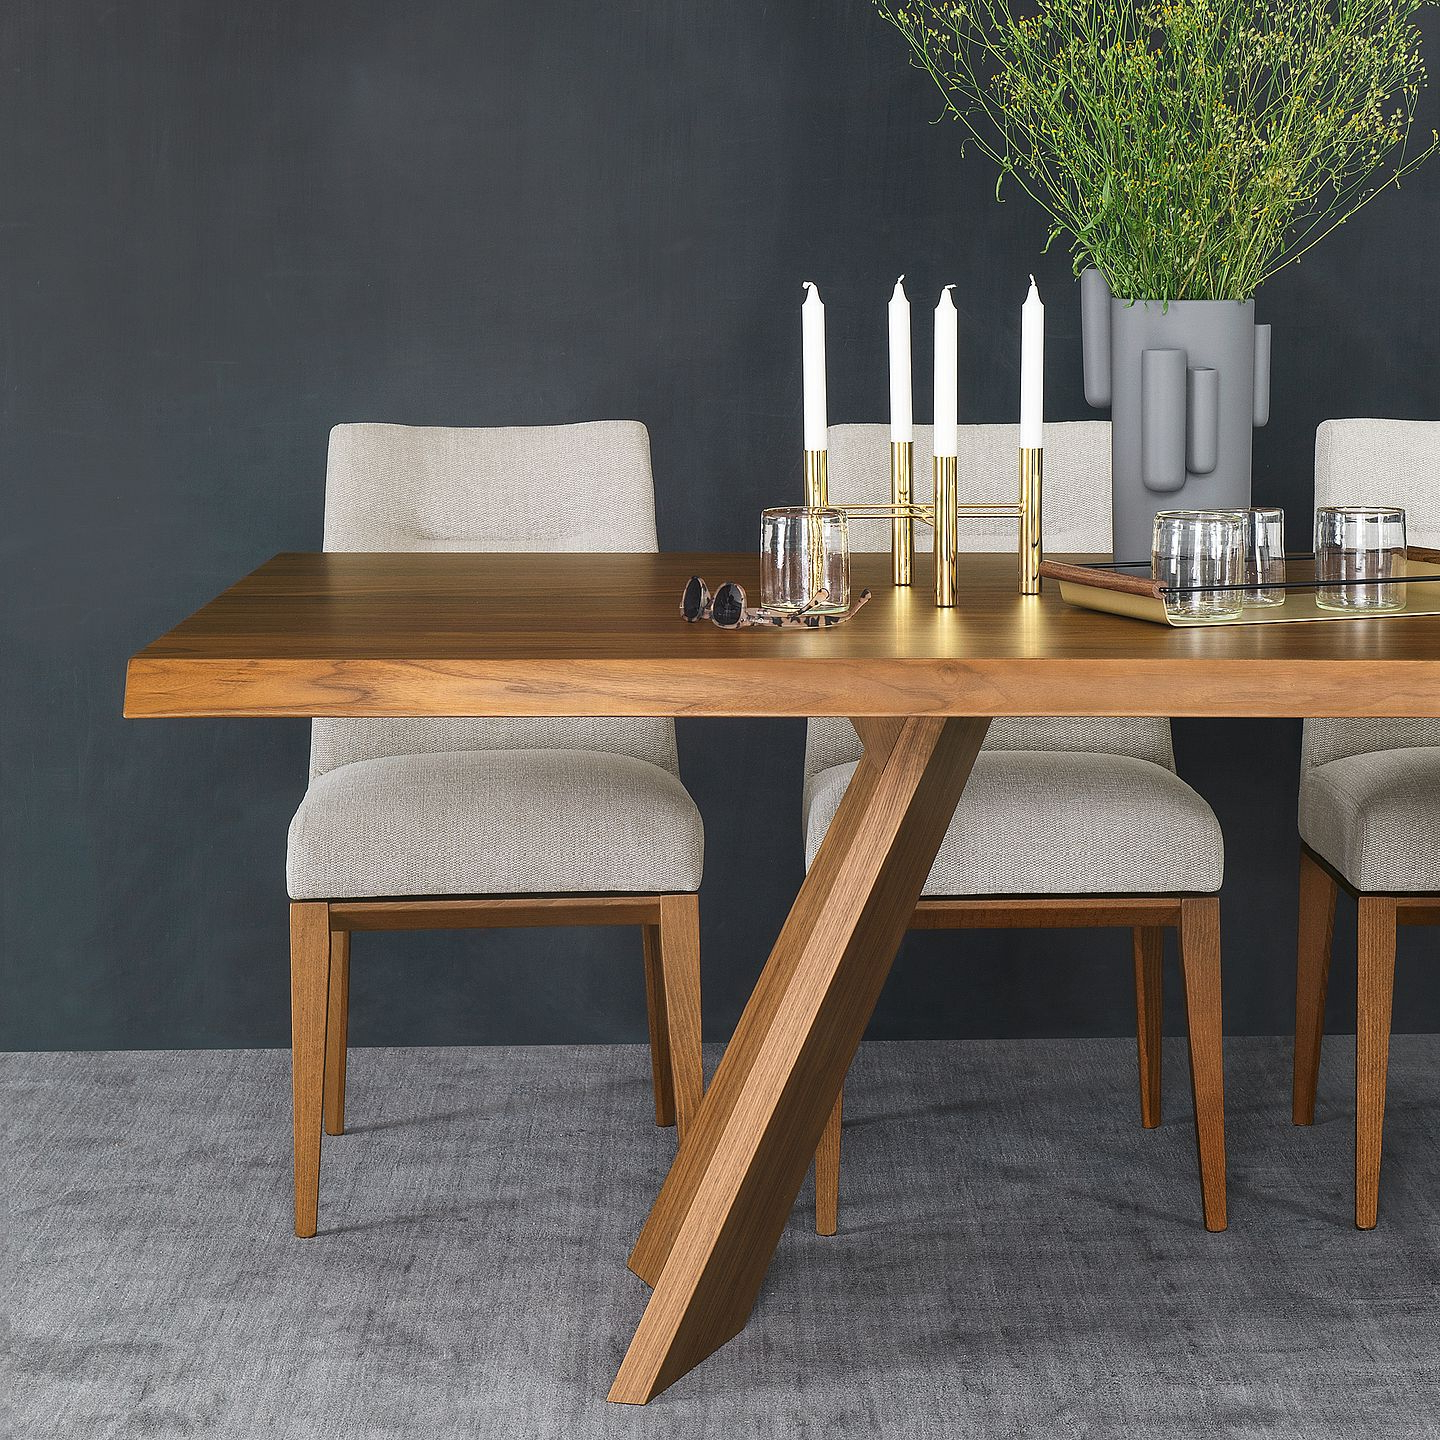 Home Furniture: Italian Design Furnishingcalligaris – Calligaris Intended For Famous North Reading 5 Piece Dining Table Sets (Gallery 19 of 20)